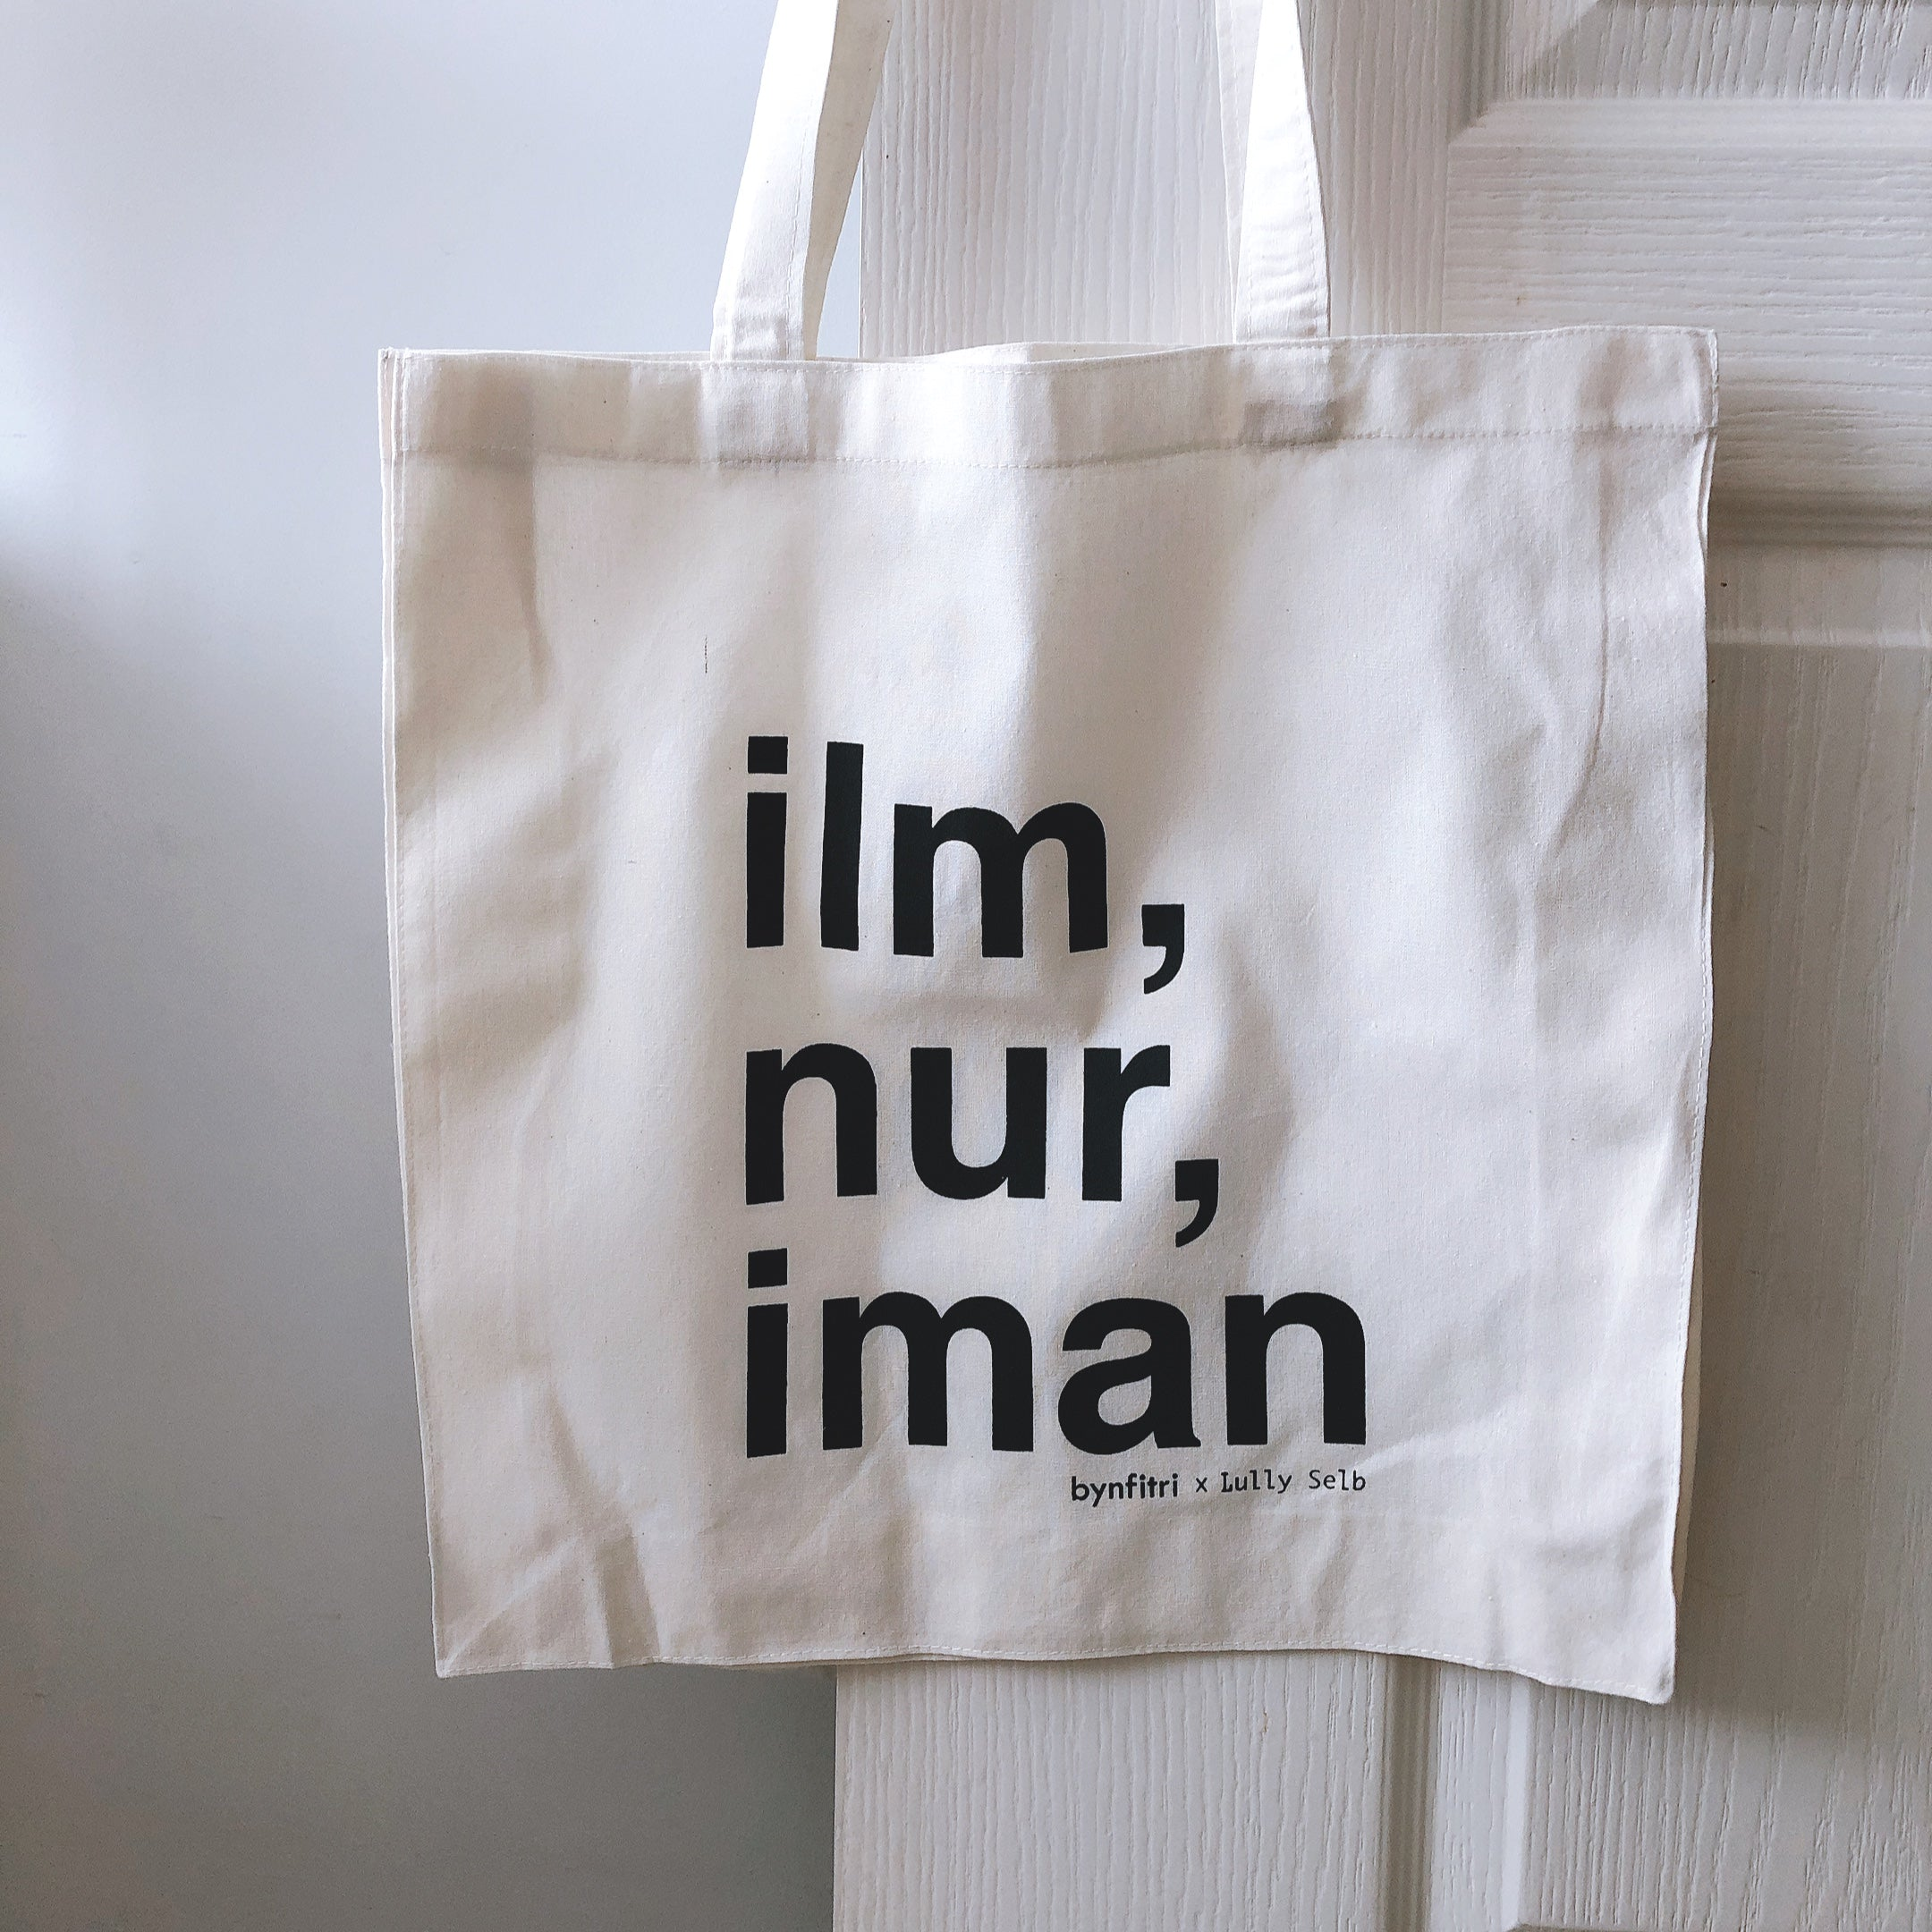 Bynfitri x LullySelb Exclusive Tote Bag